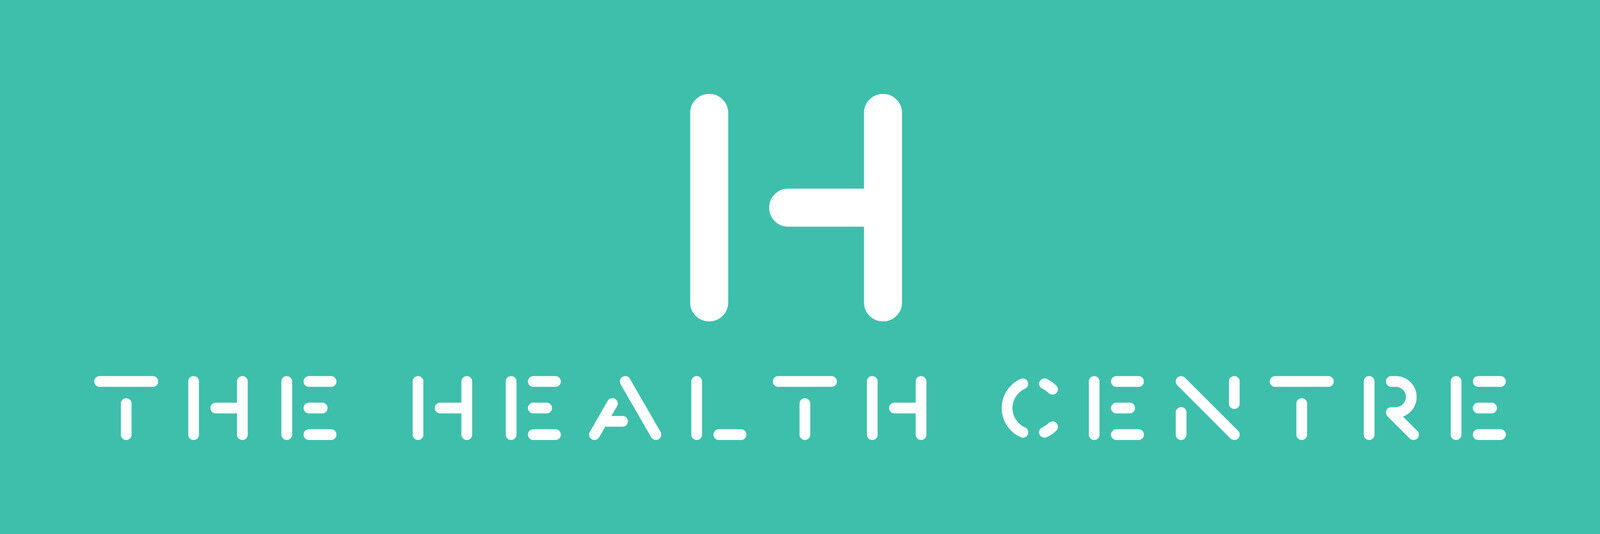 thehealthcentre